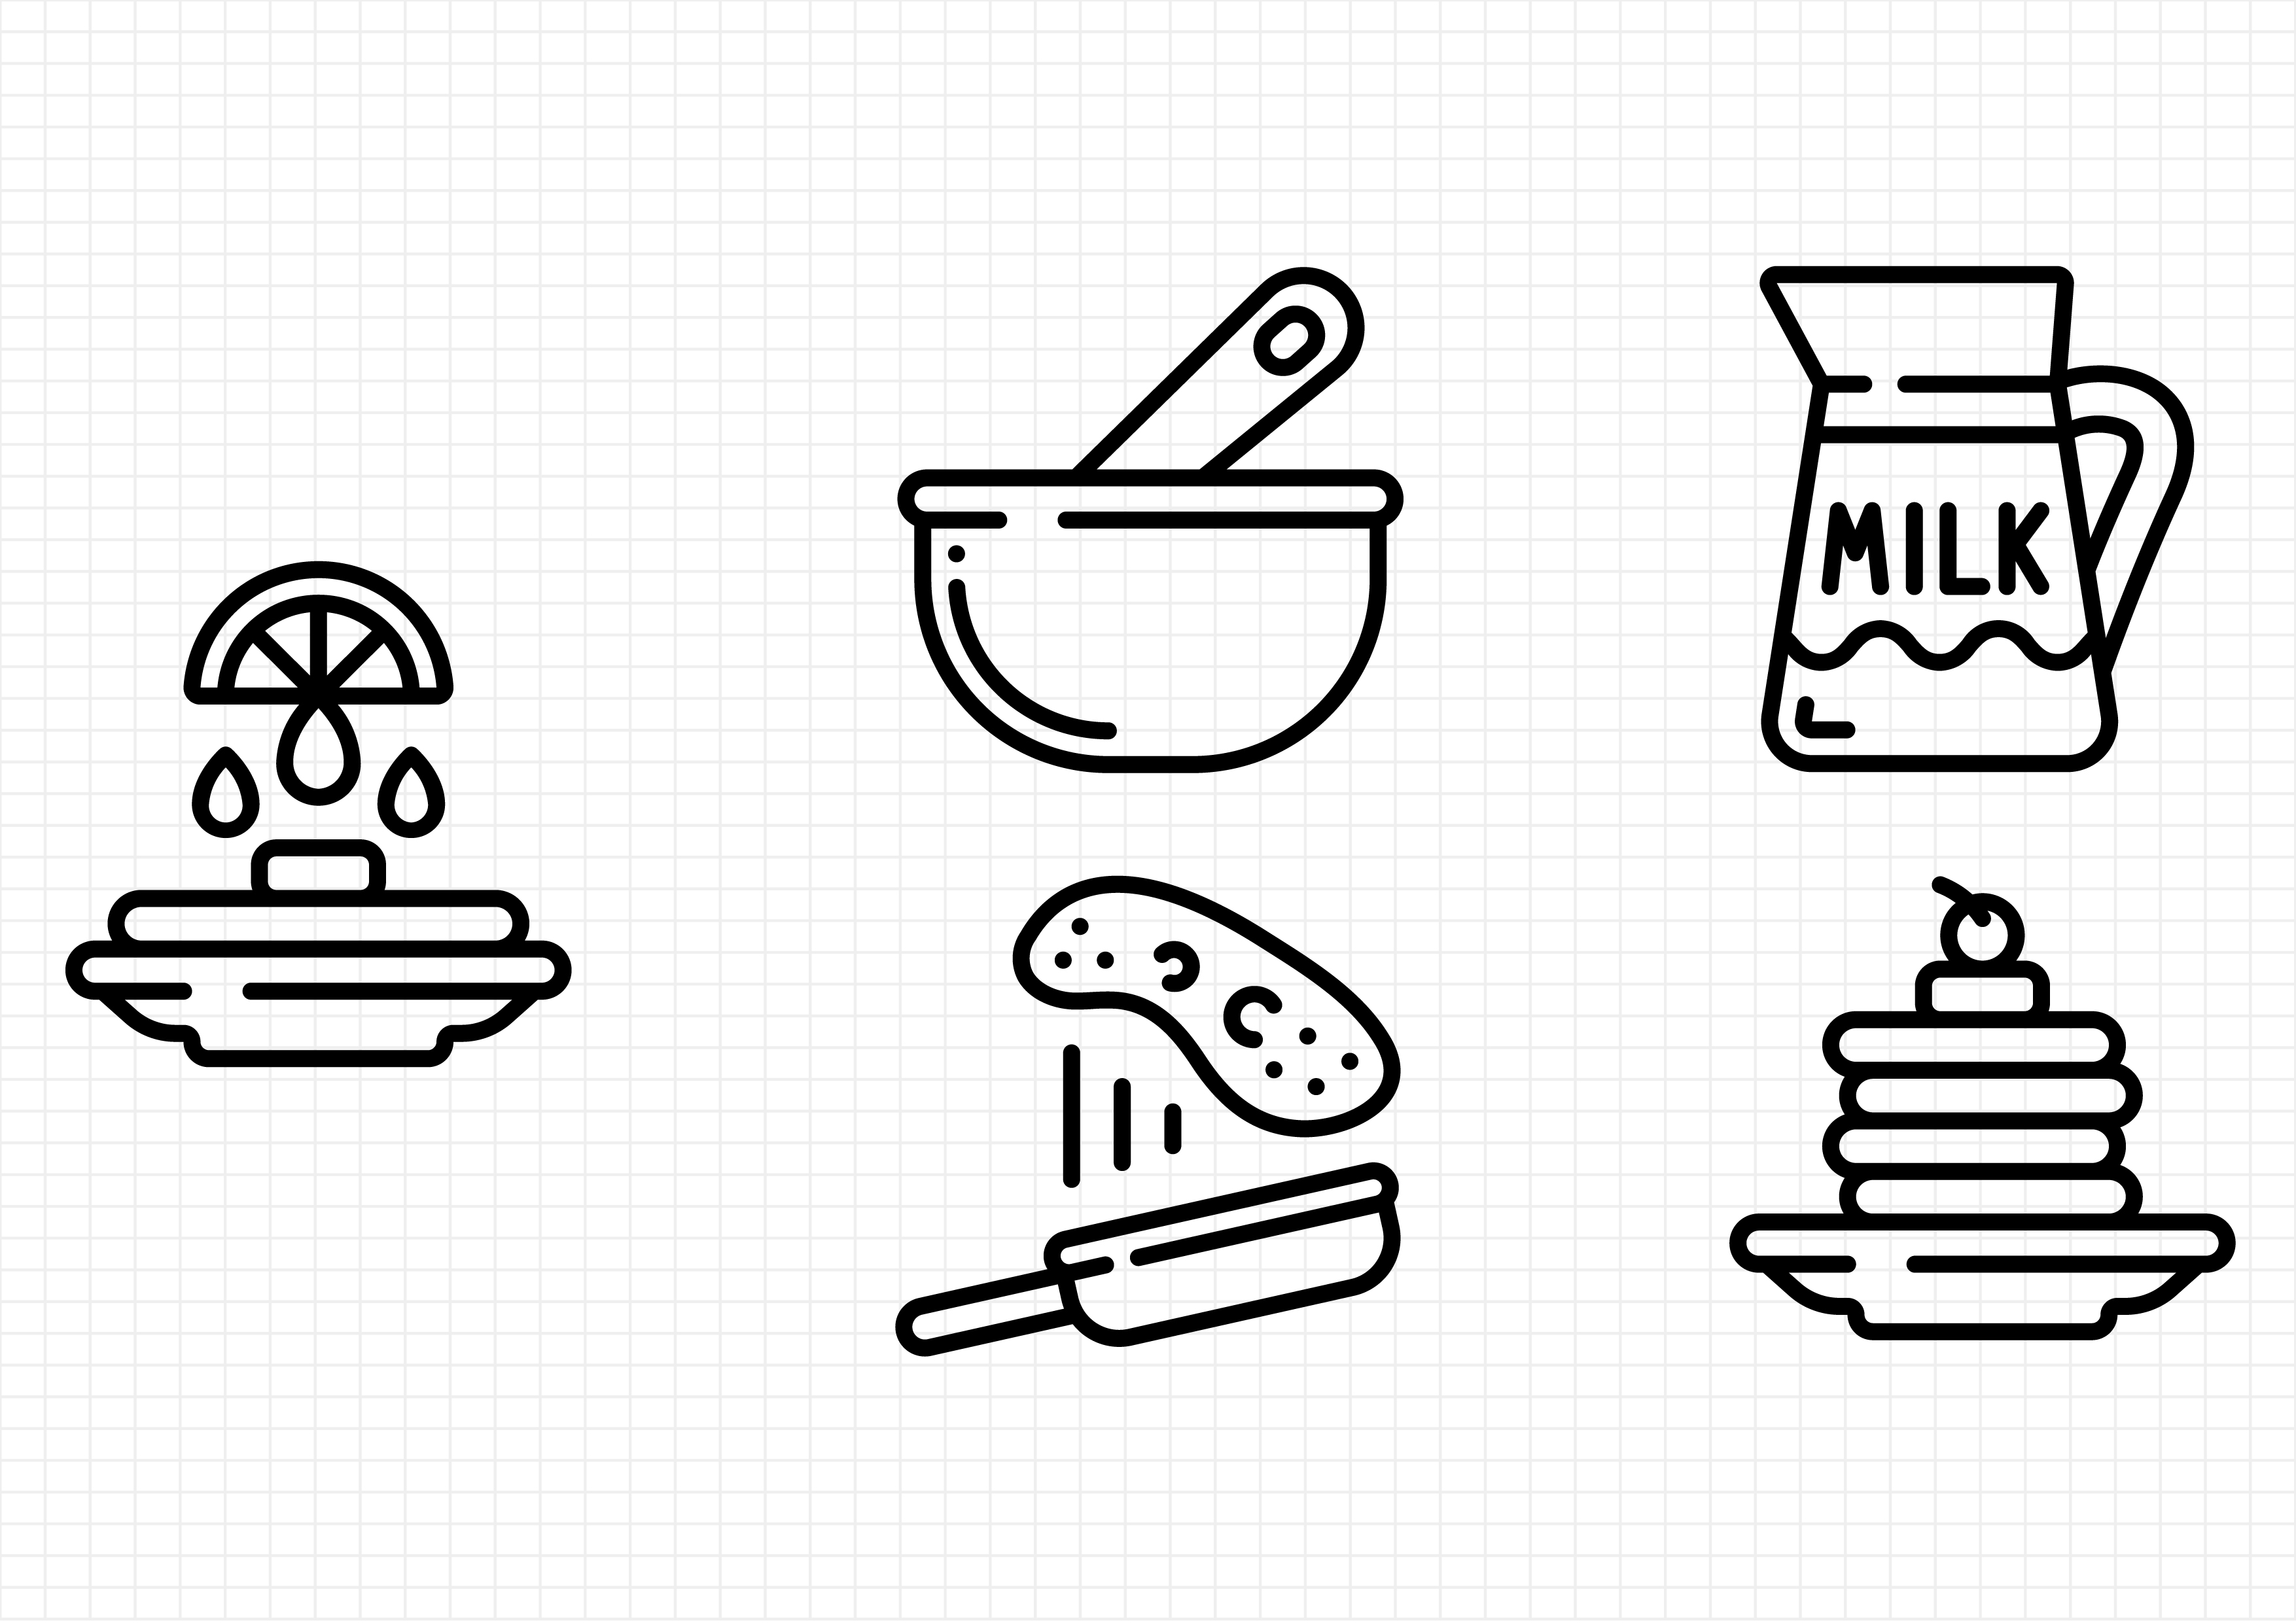 Download Free Pancake Day Graphic By Sayangnadyapkm3 Creative Fabrica for Cricut Explore, Silhouette and other cutting machines.